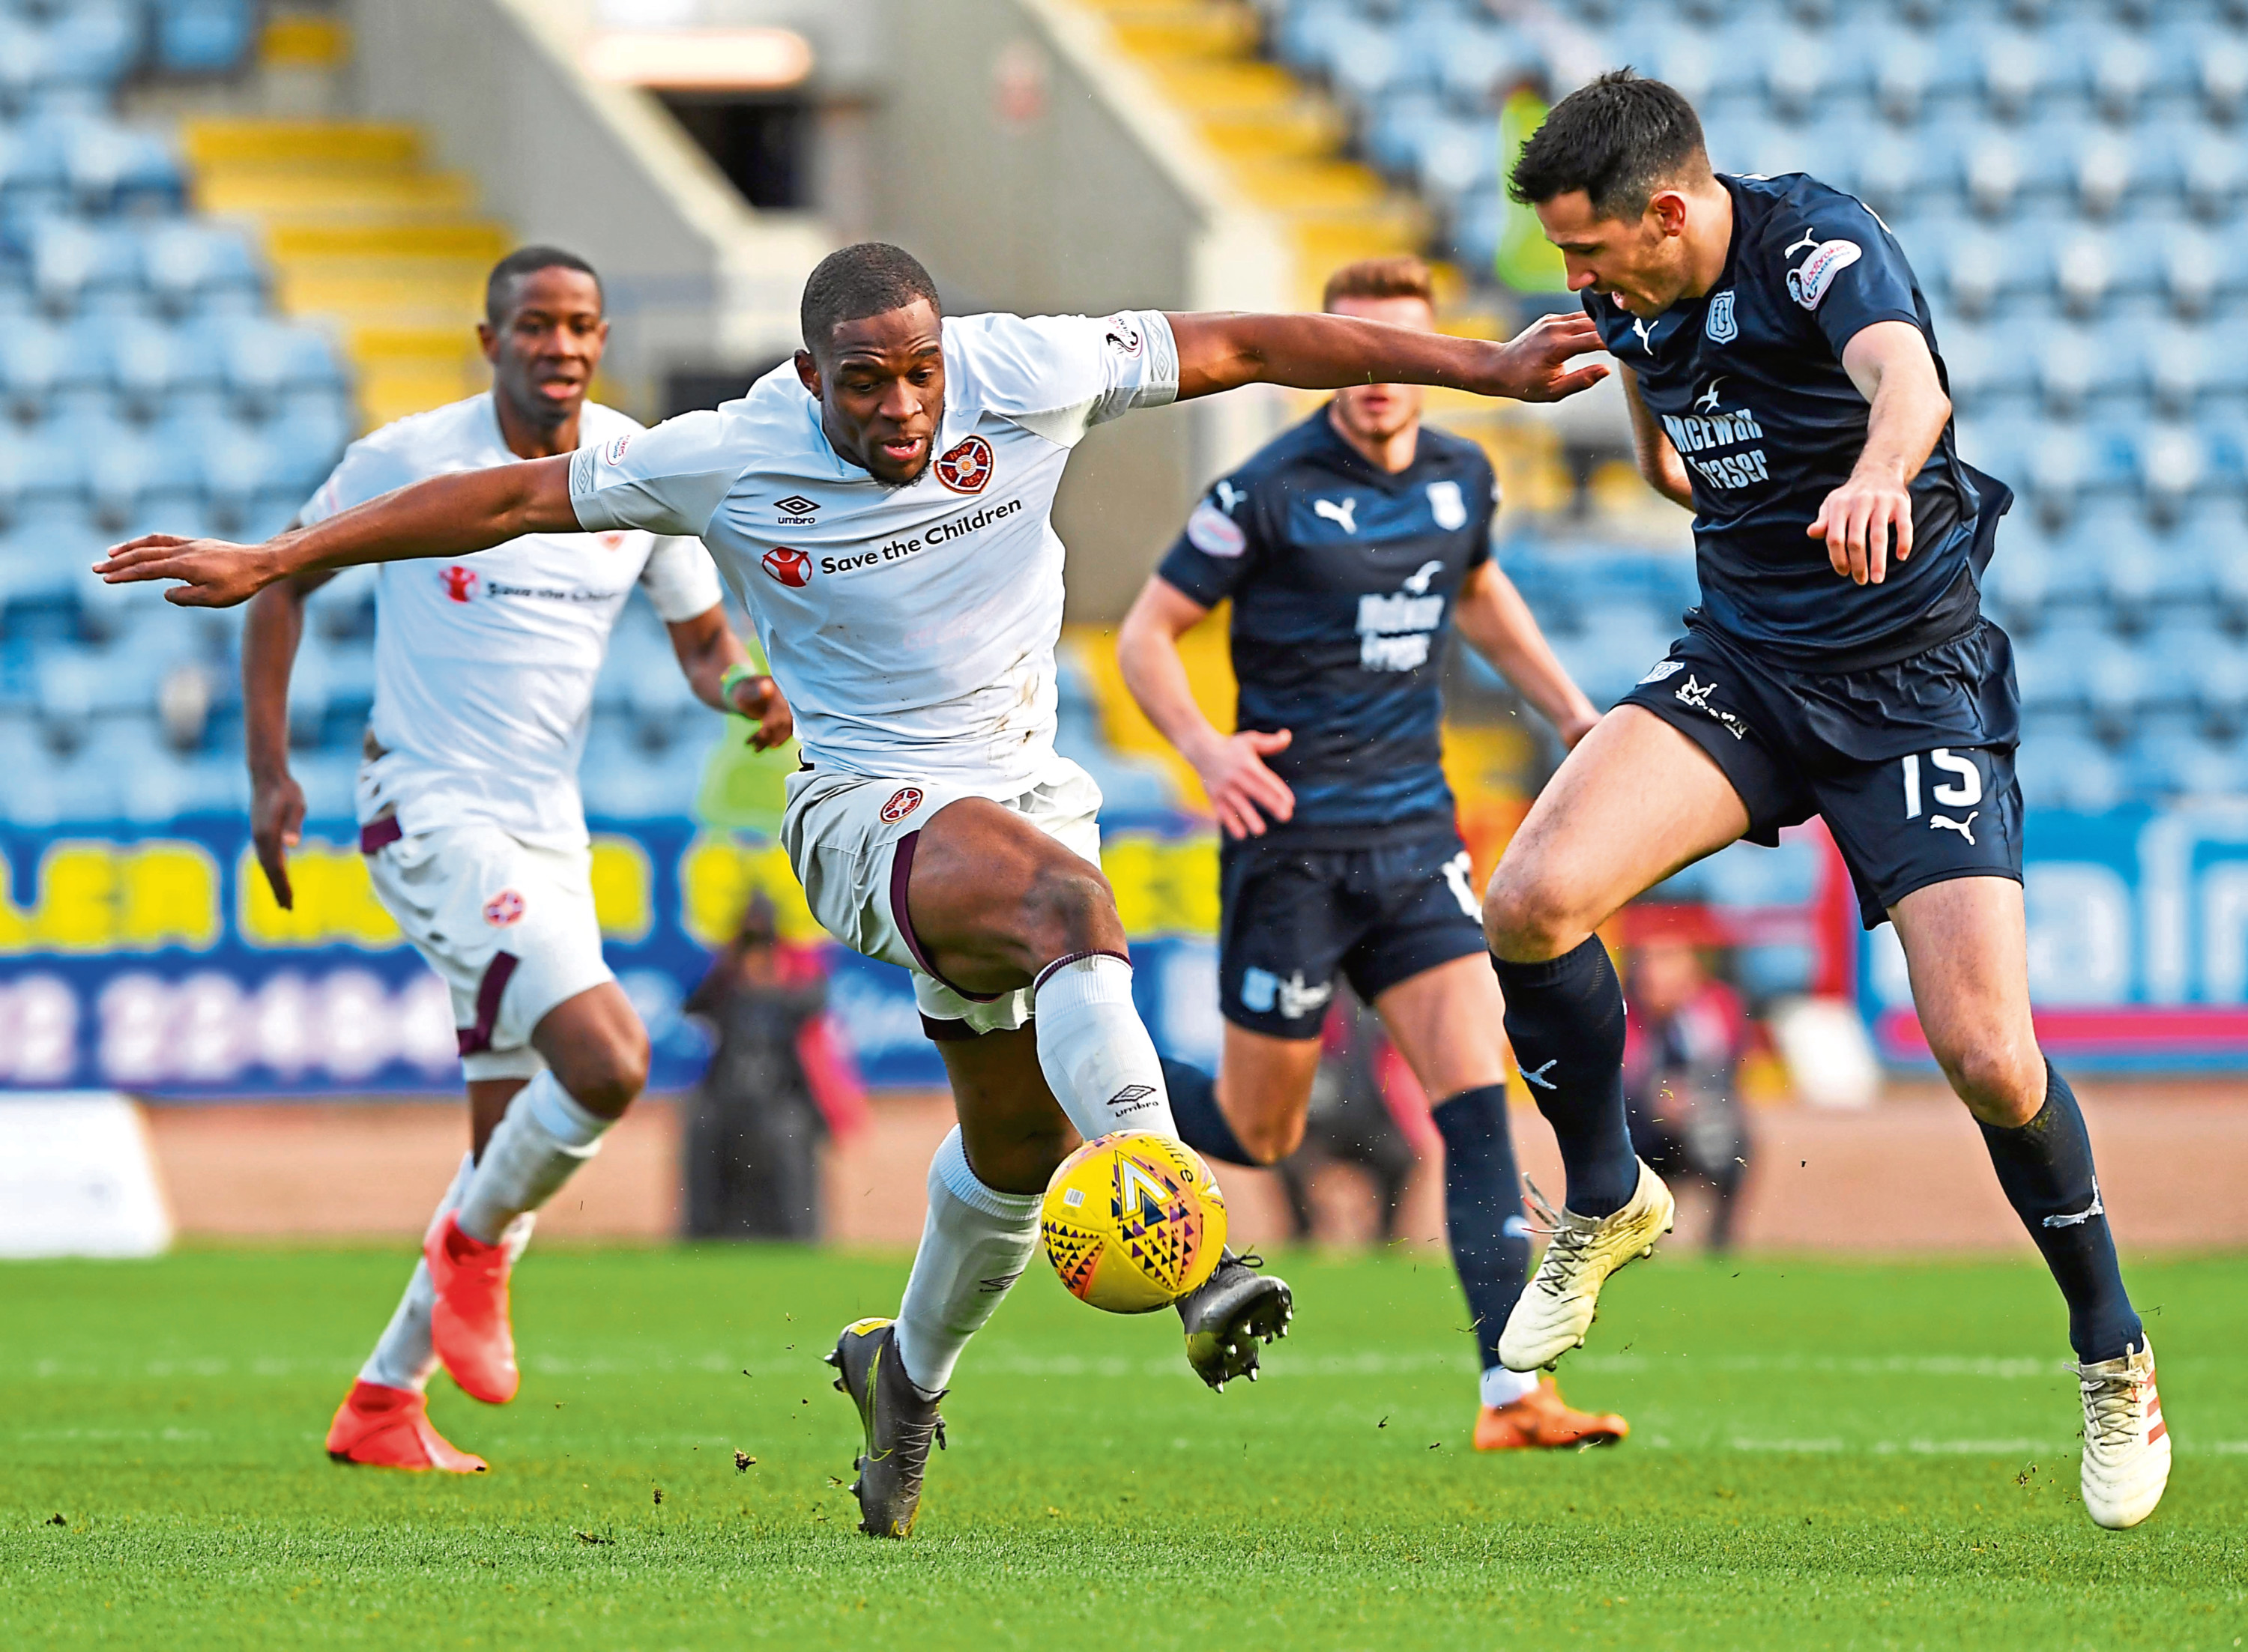 The Dundee defence will face a different threat from the one posed by Hearts striker Uche Ikpeazu.